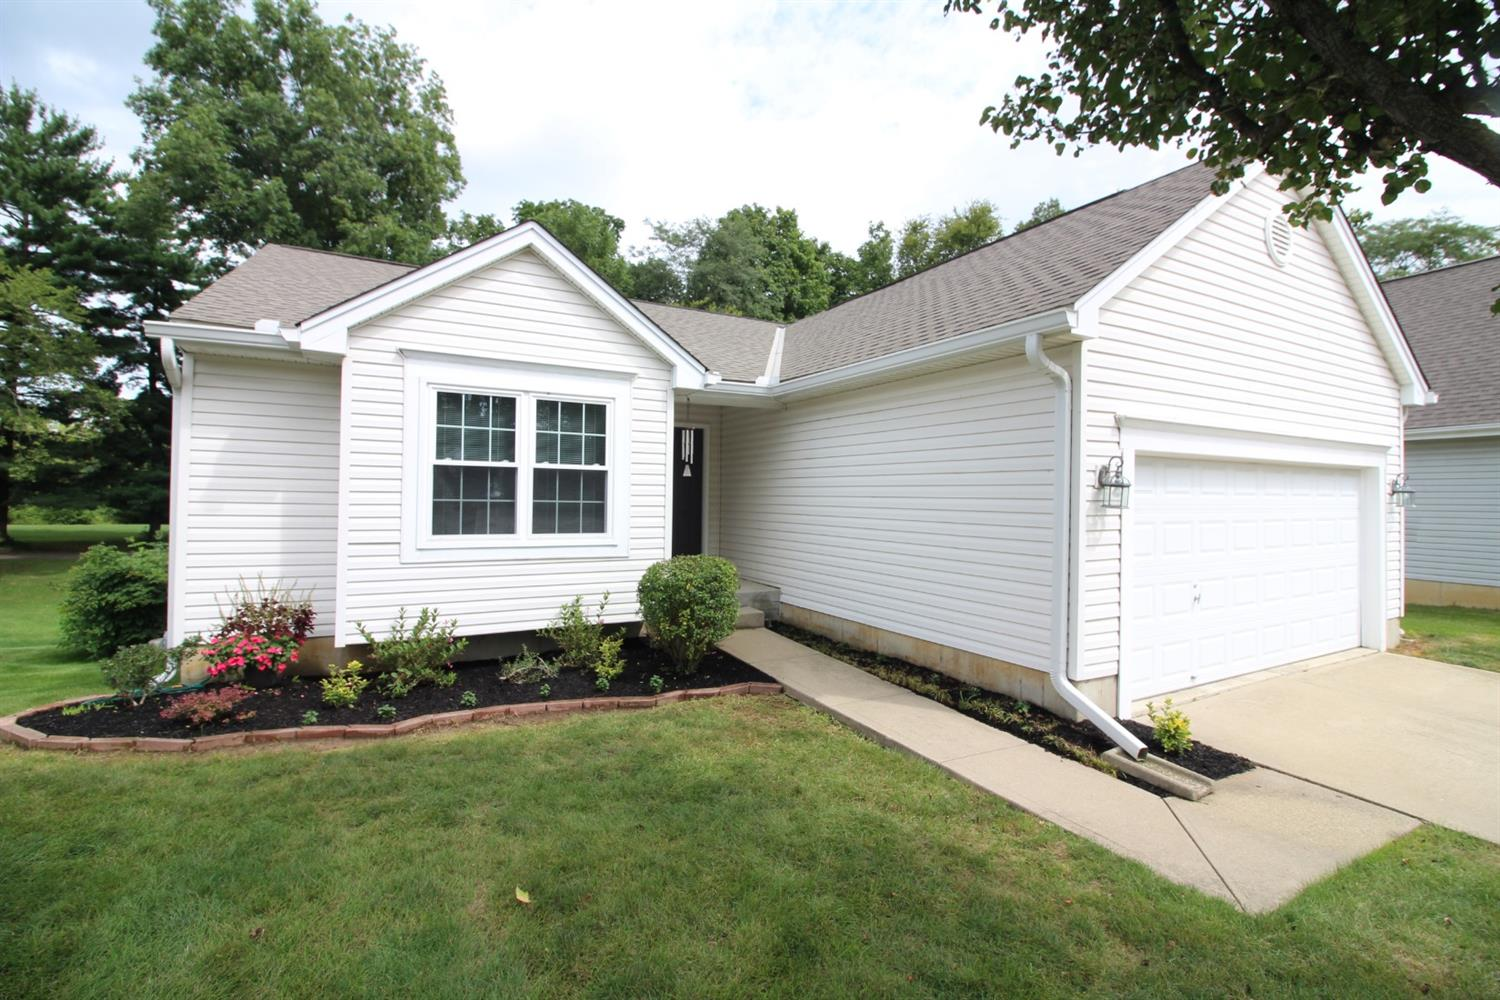 Property for sale at 4518 River Cove Drive, Union Twp,  Ohio 45034